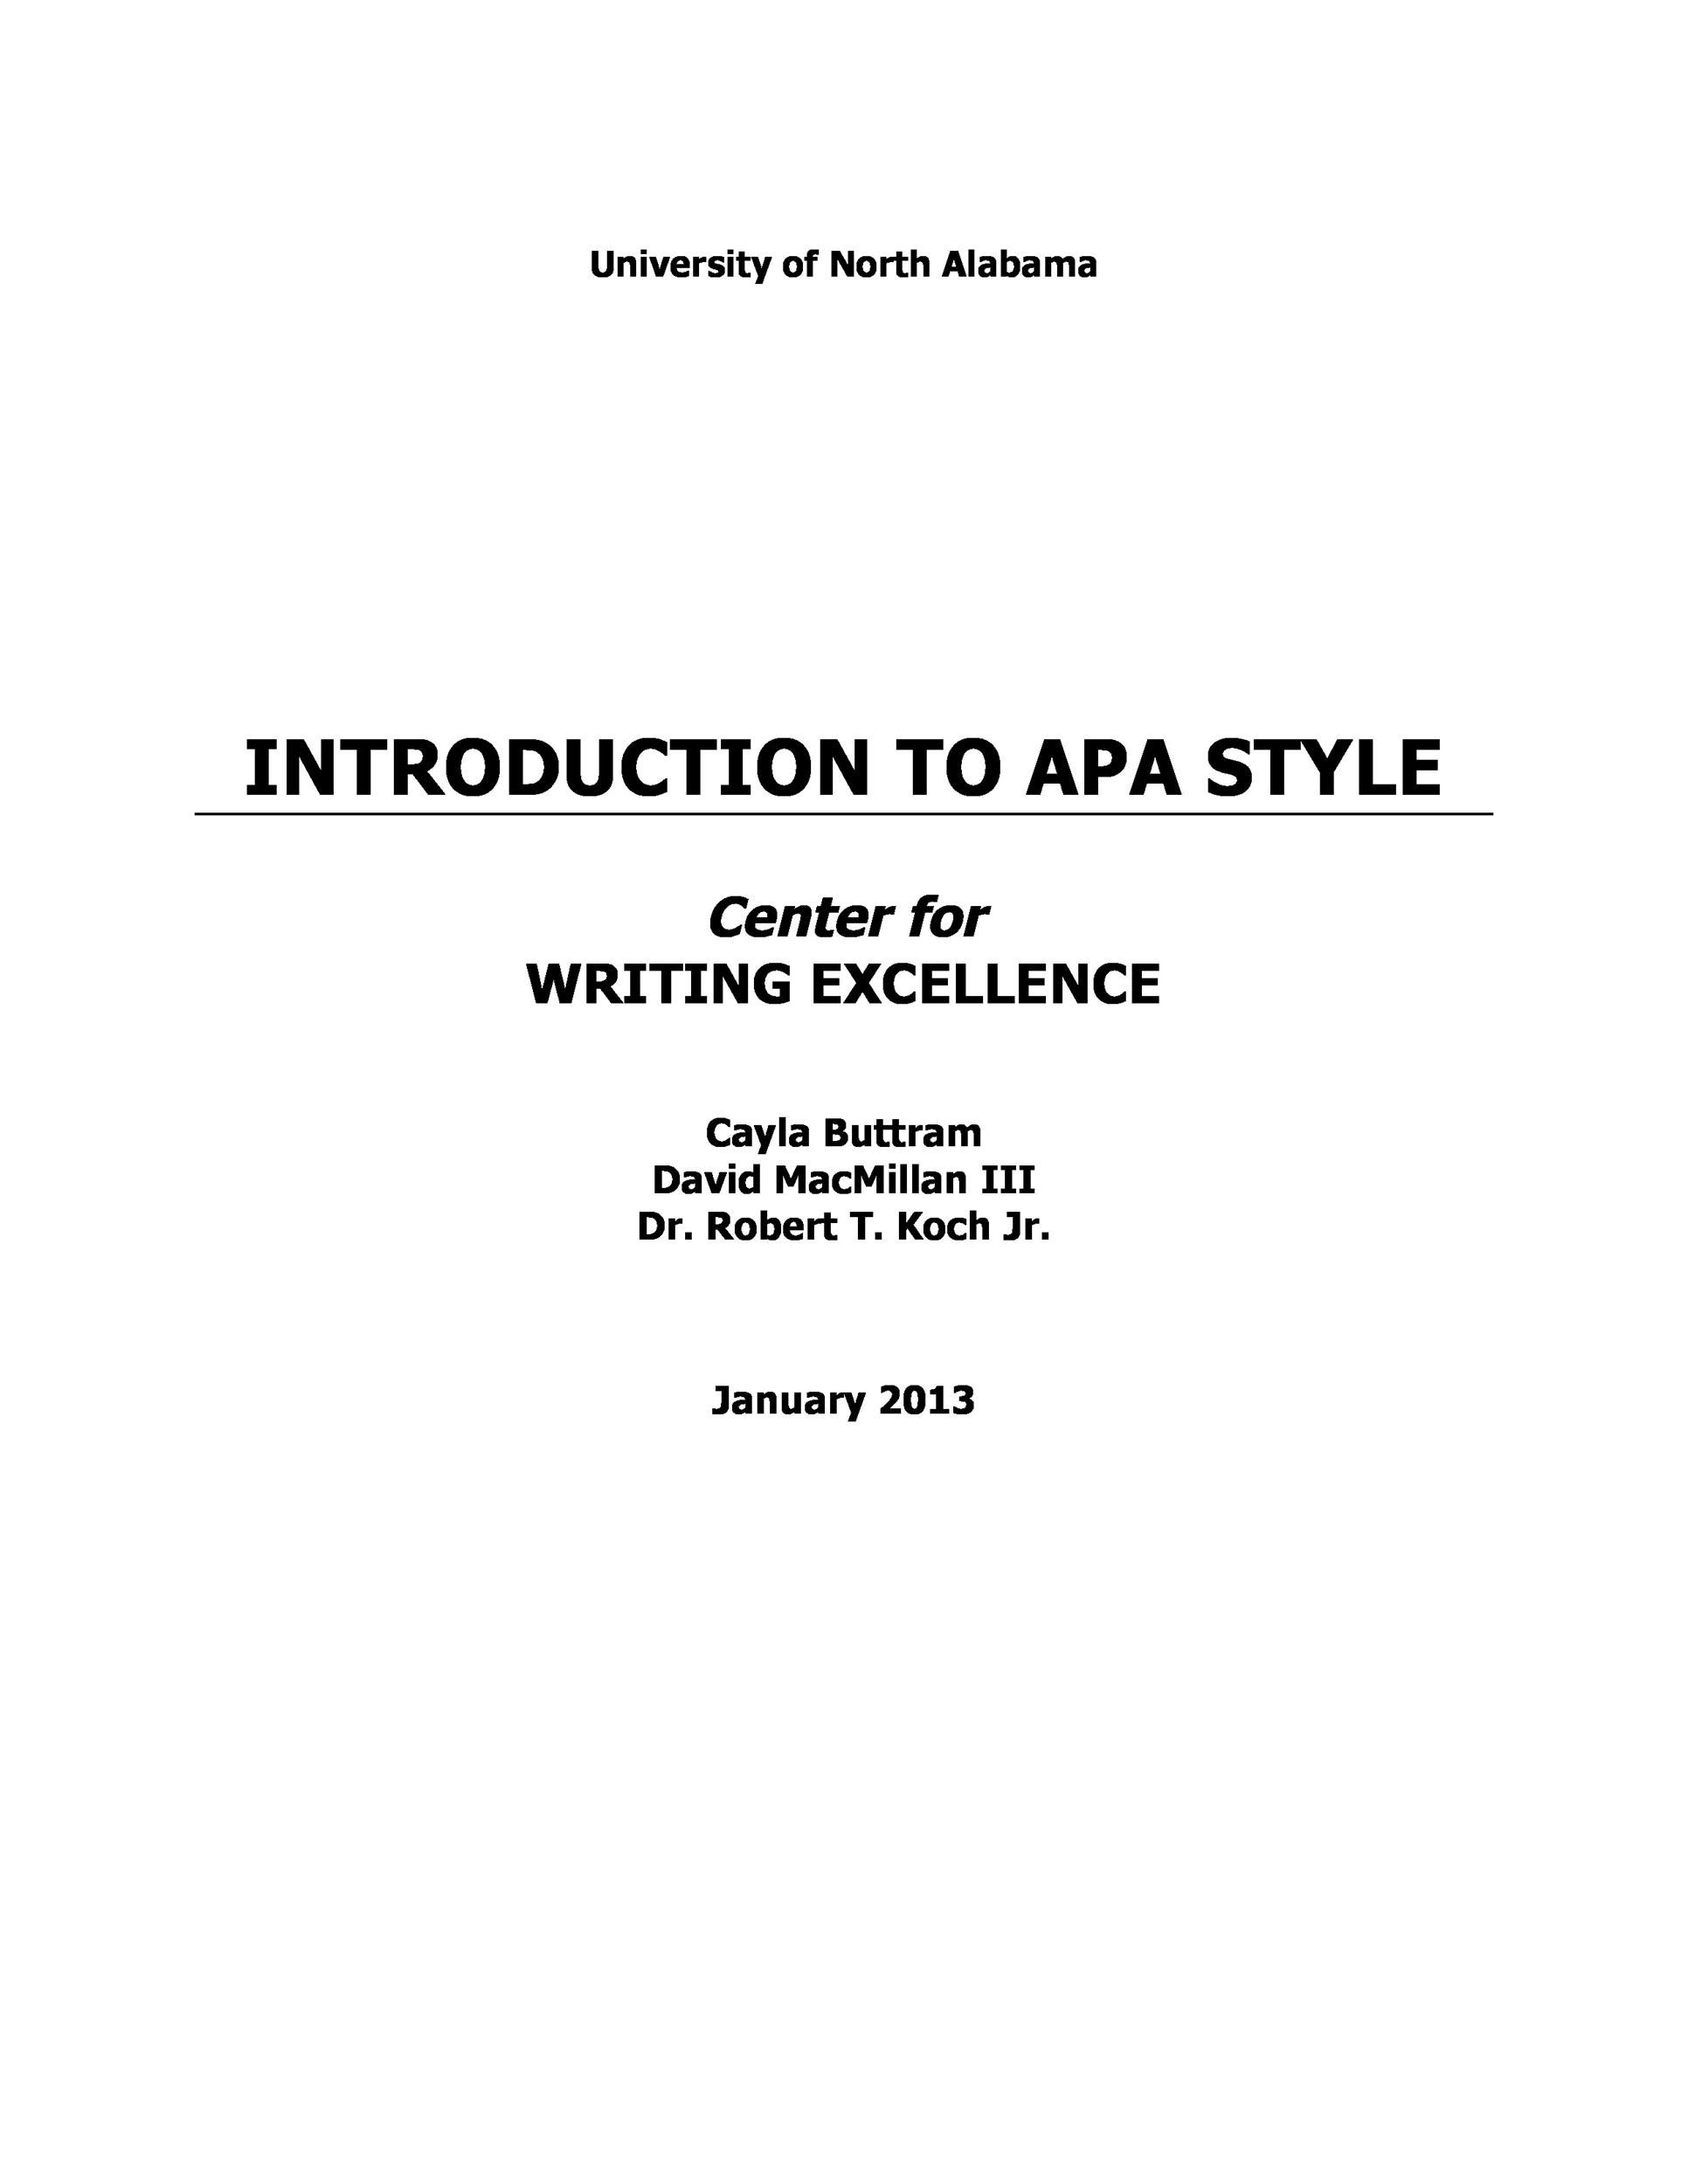 apa format style templates in word pdf template lab apa template 25 948 88 kb